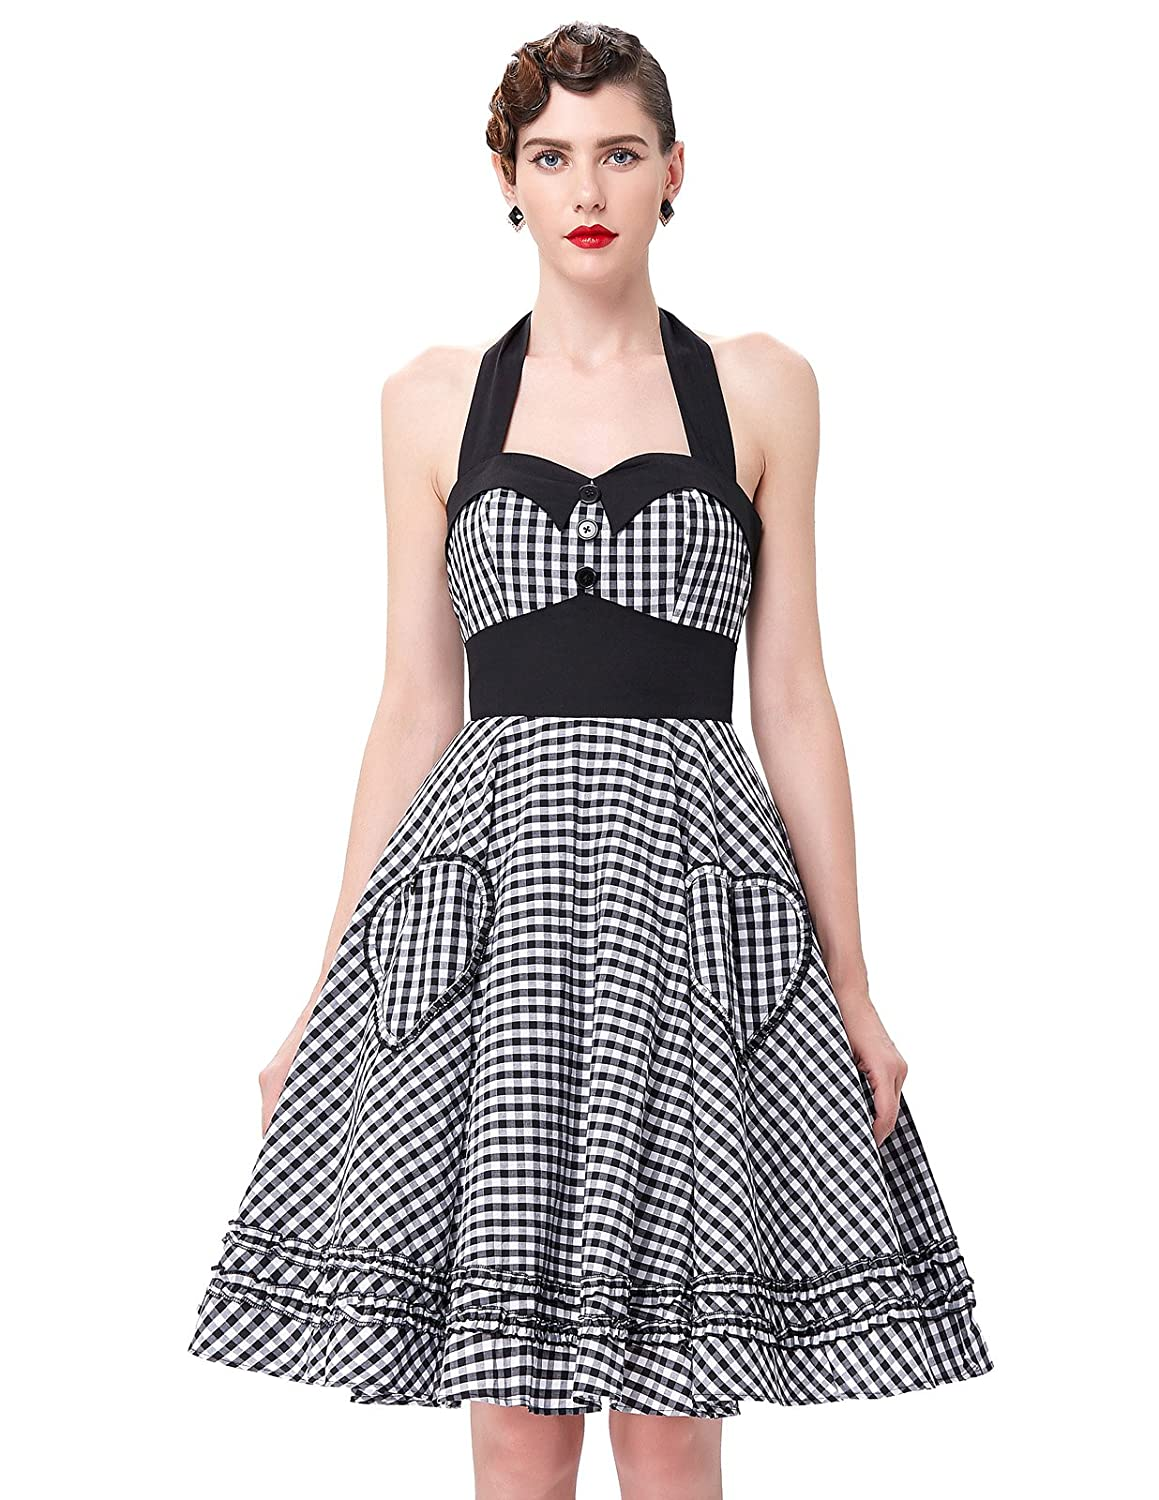 Js Fashion Vintage Dress Grace Karin Women's 50s Vintage Style Cocktail Dress Full Circle Halter Dress by Grace+Karin